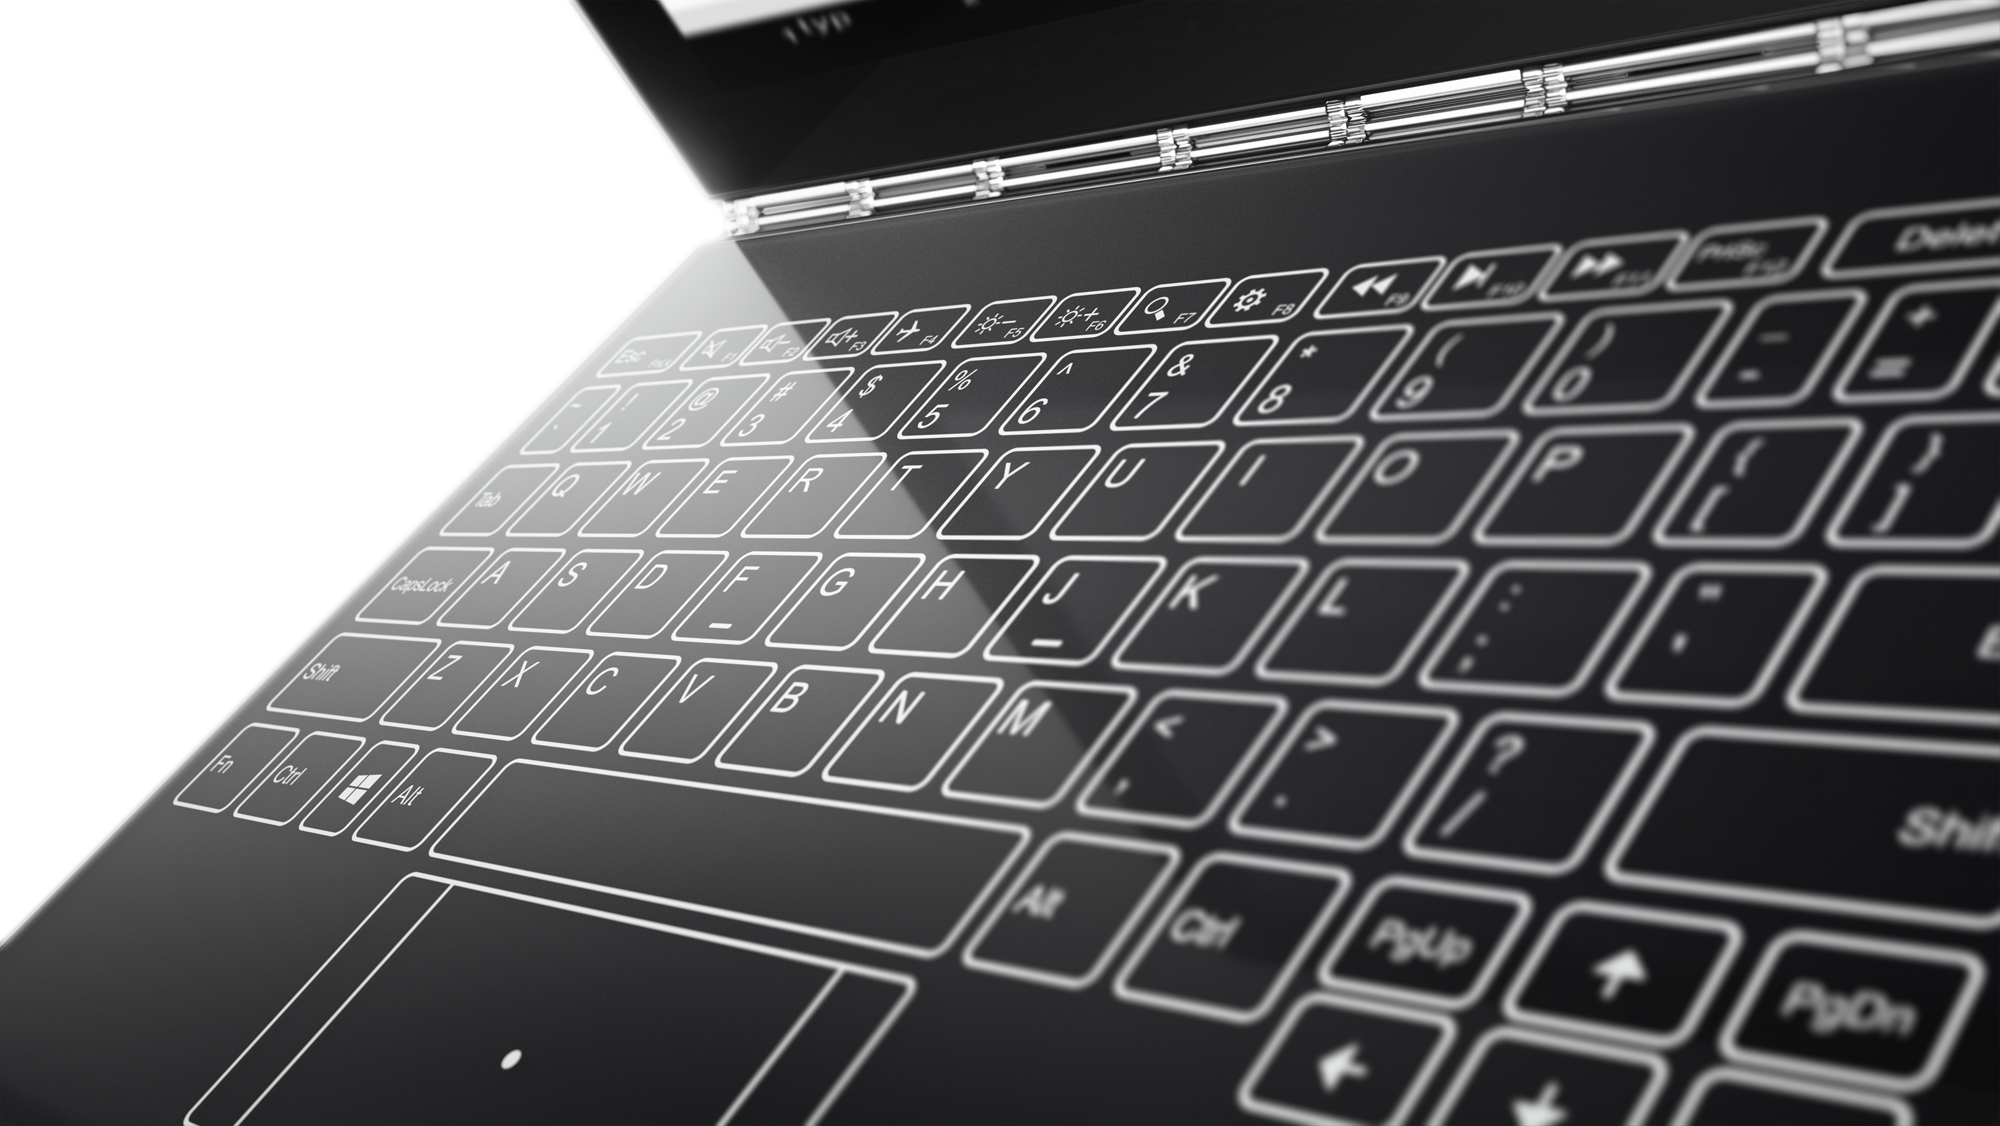 The keyboard of the Lenovo Yoga Book.